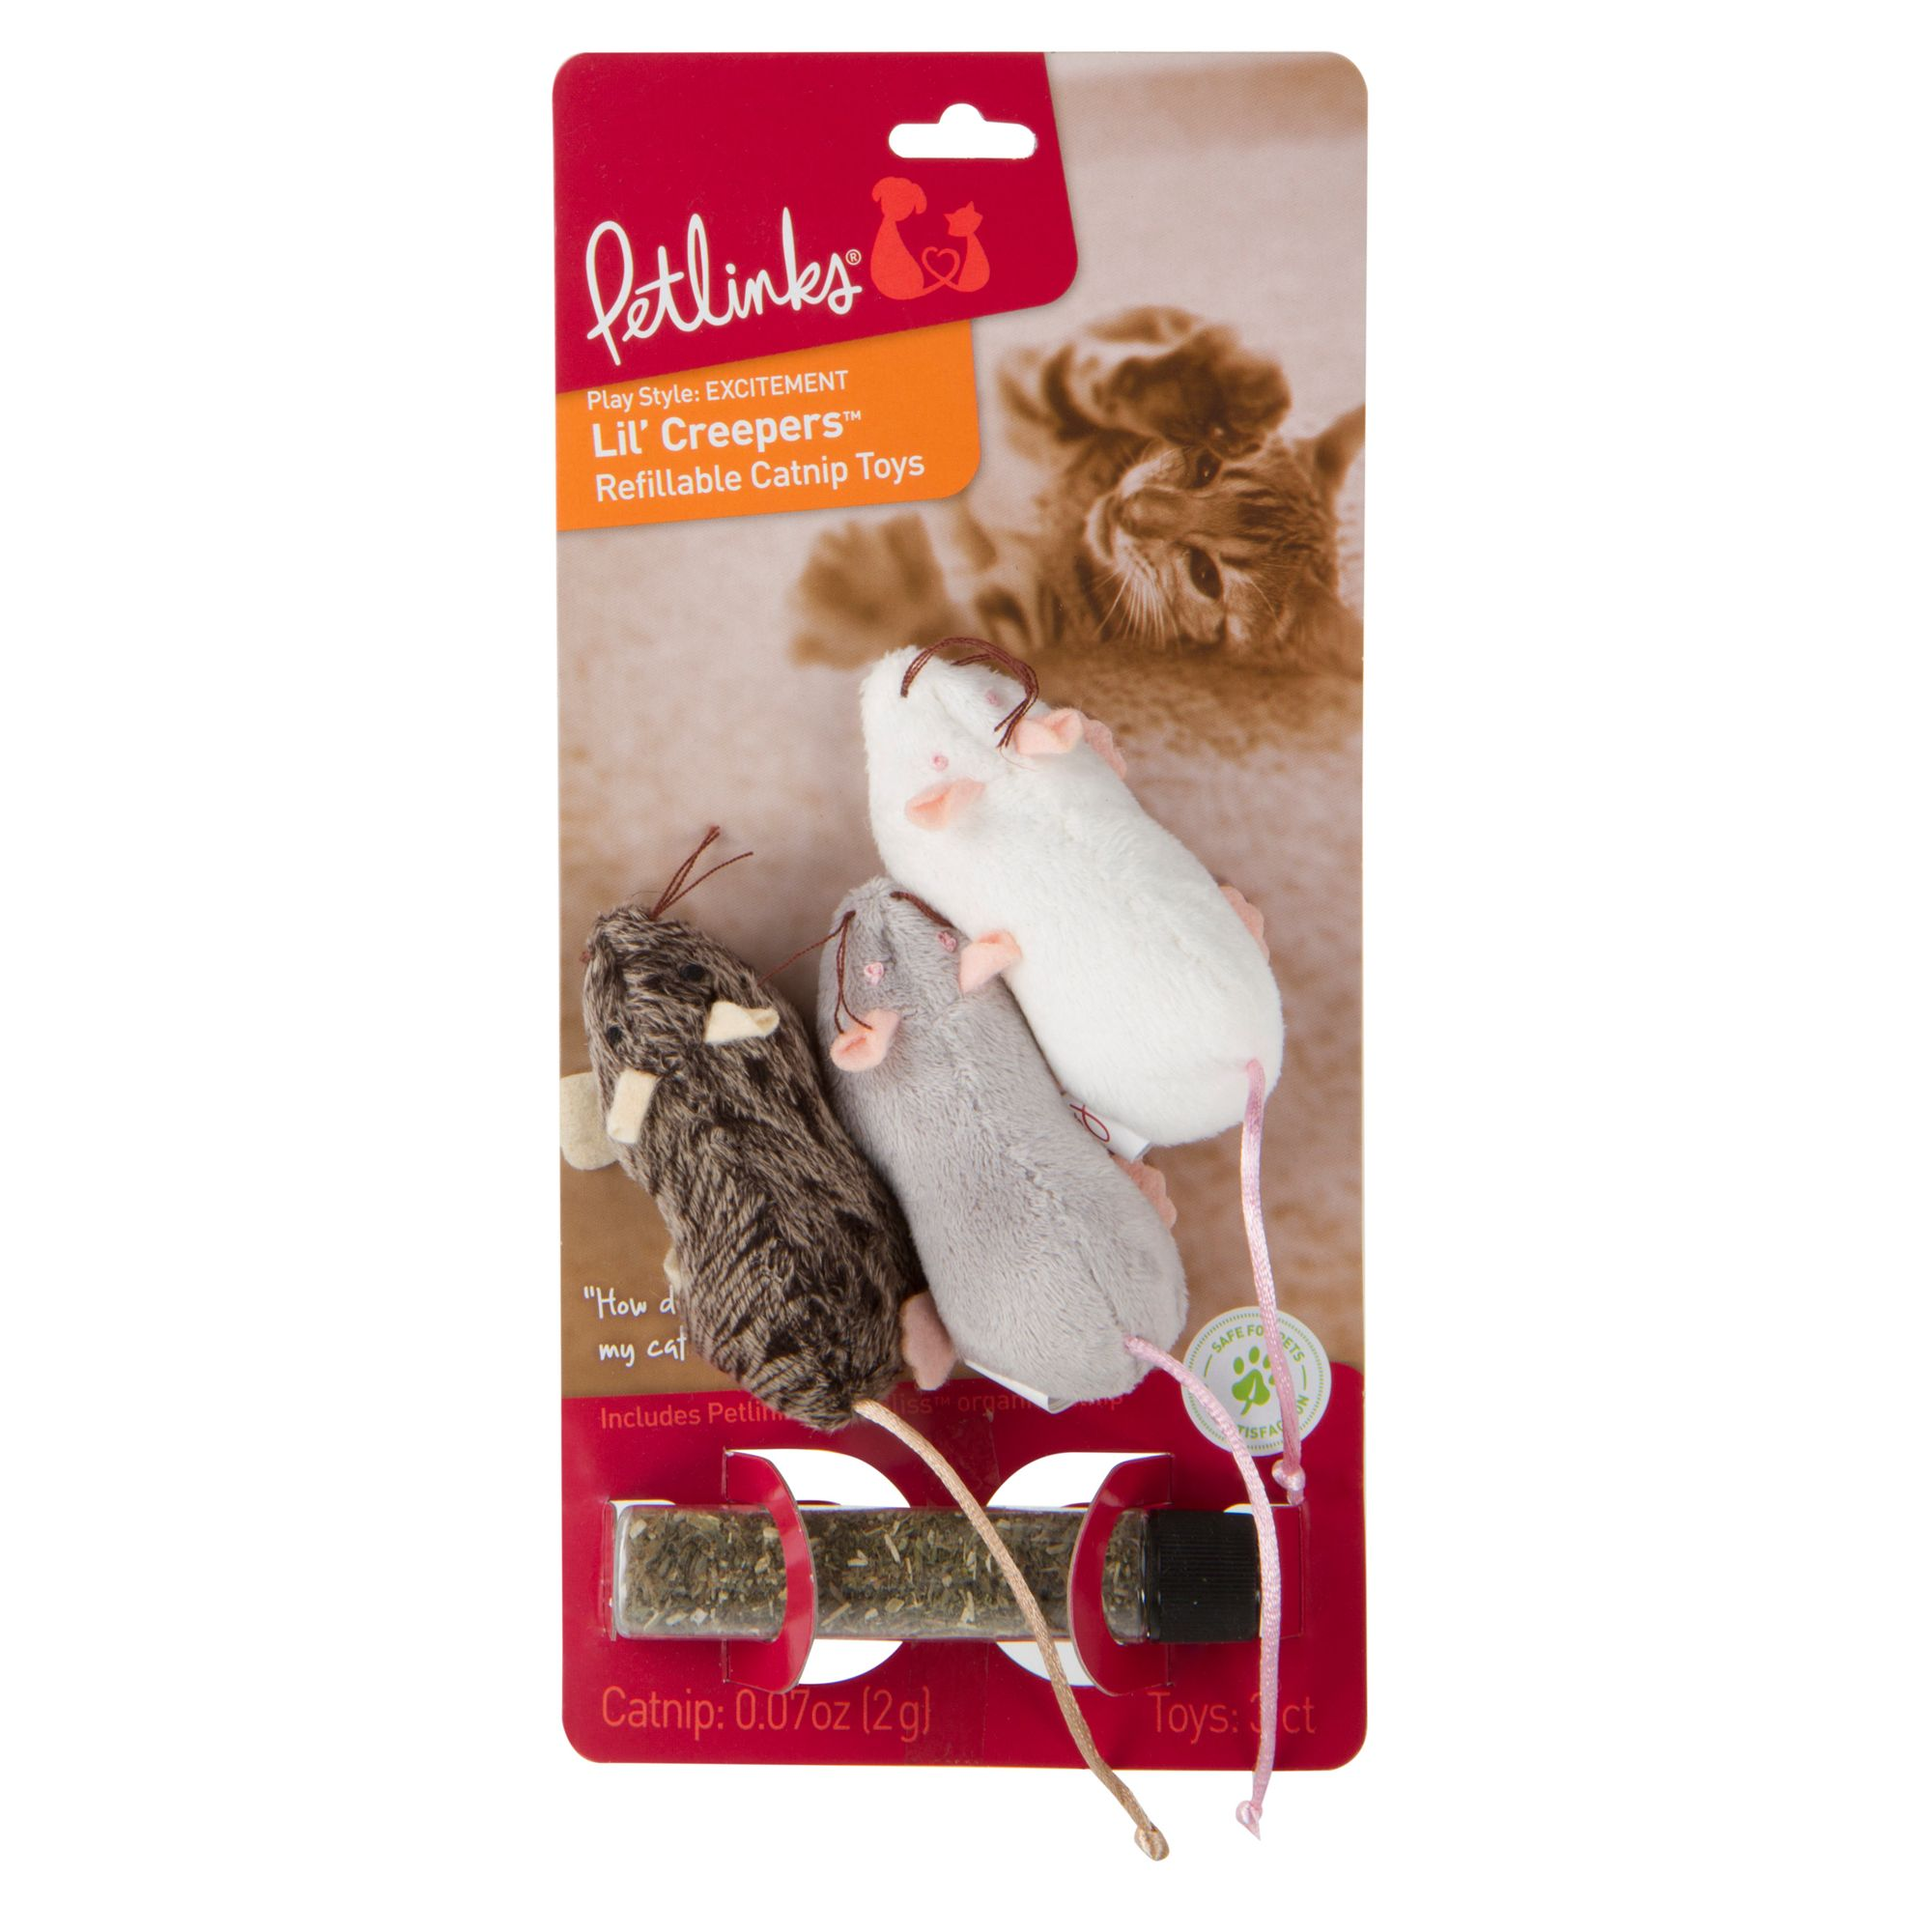 Petlinks Lil Creepers Mice Cat Toy, Multi-Color 5161105